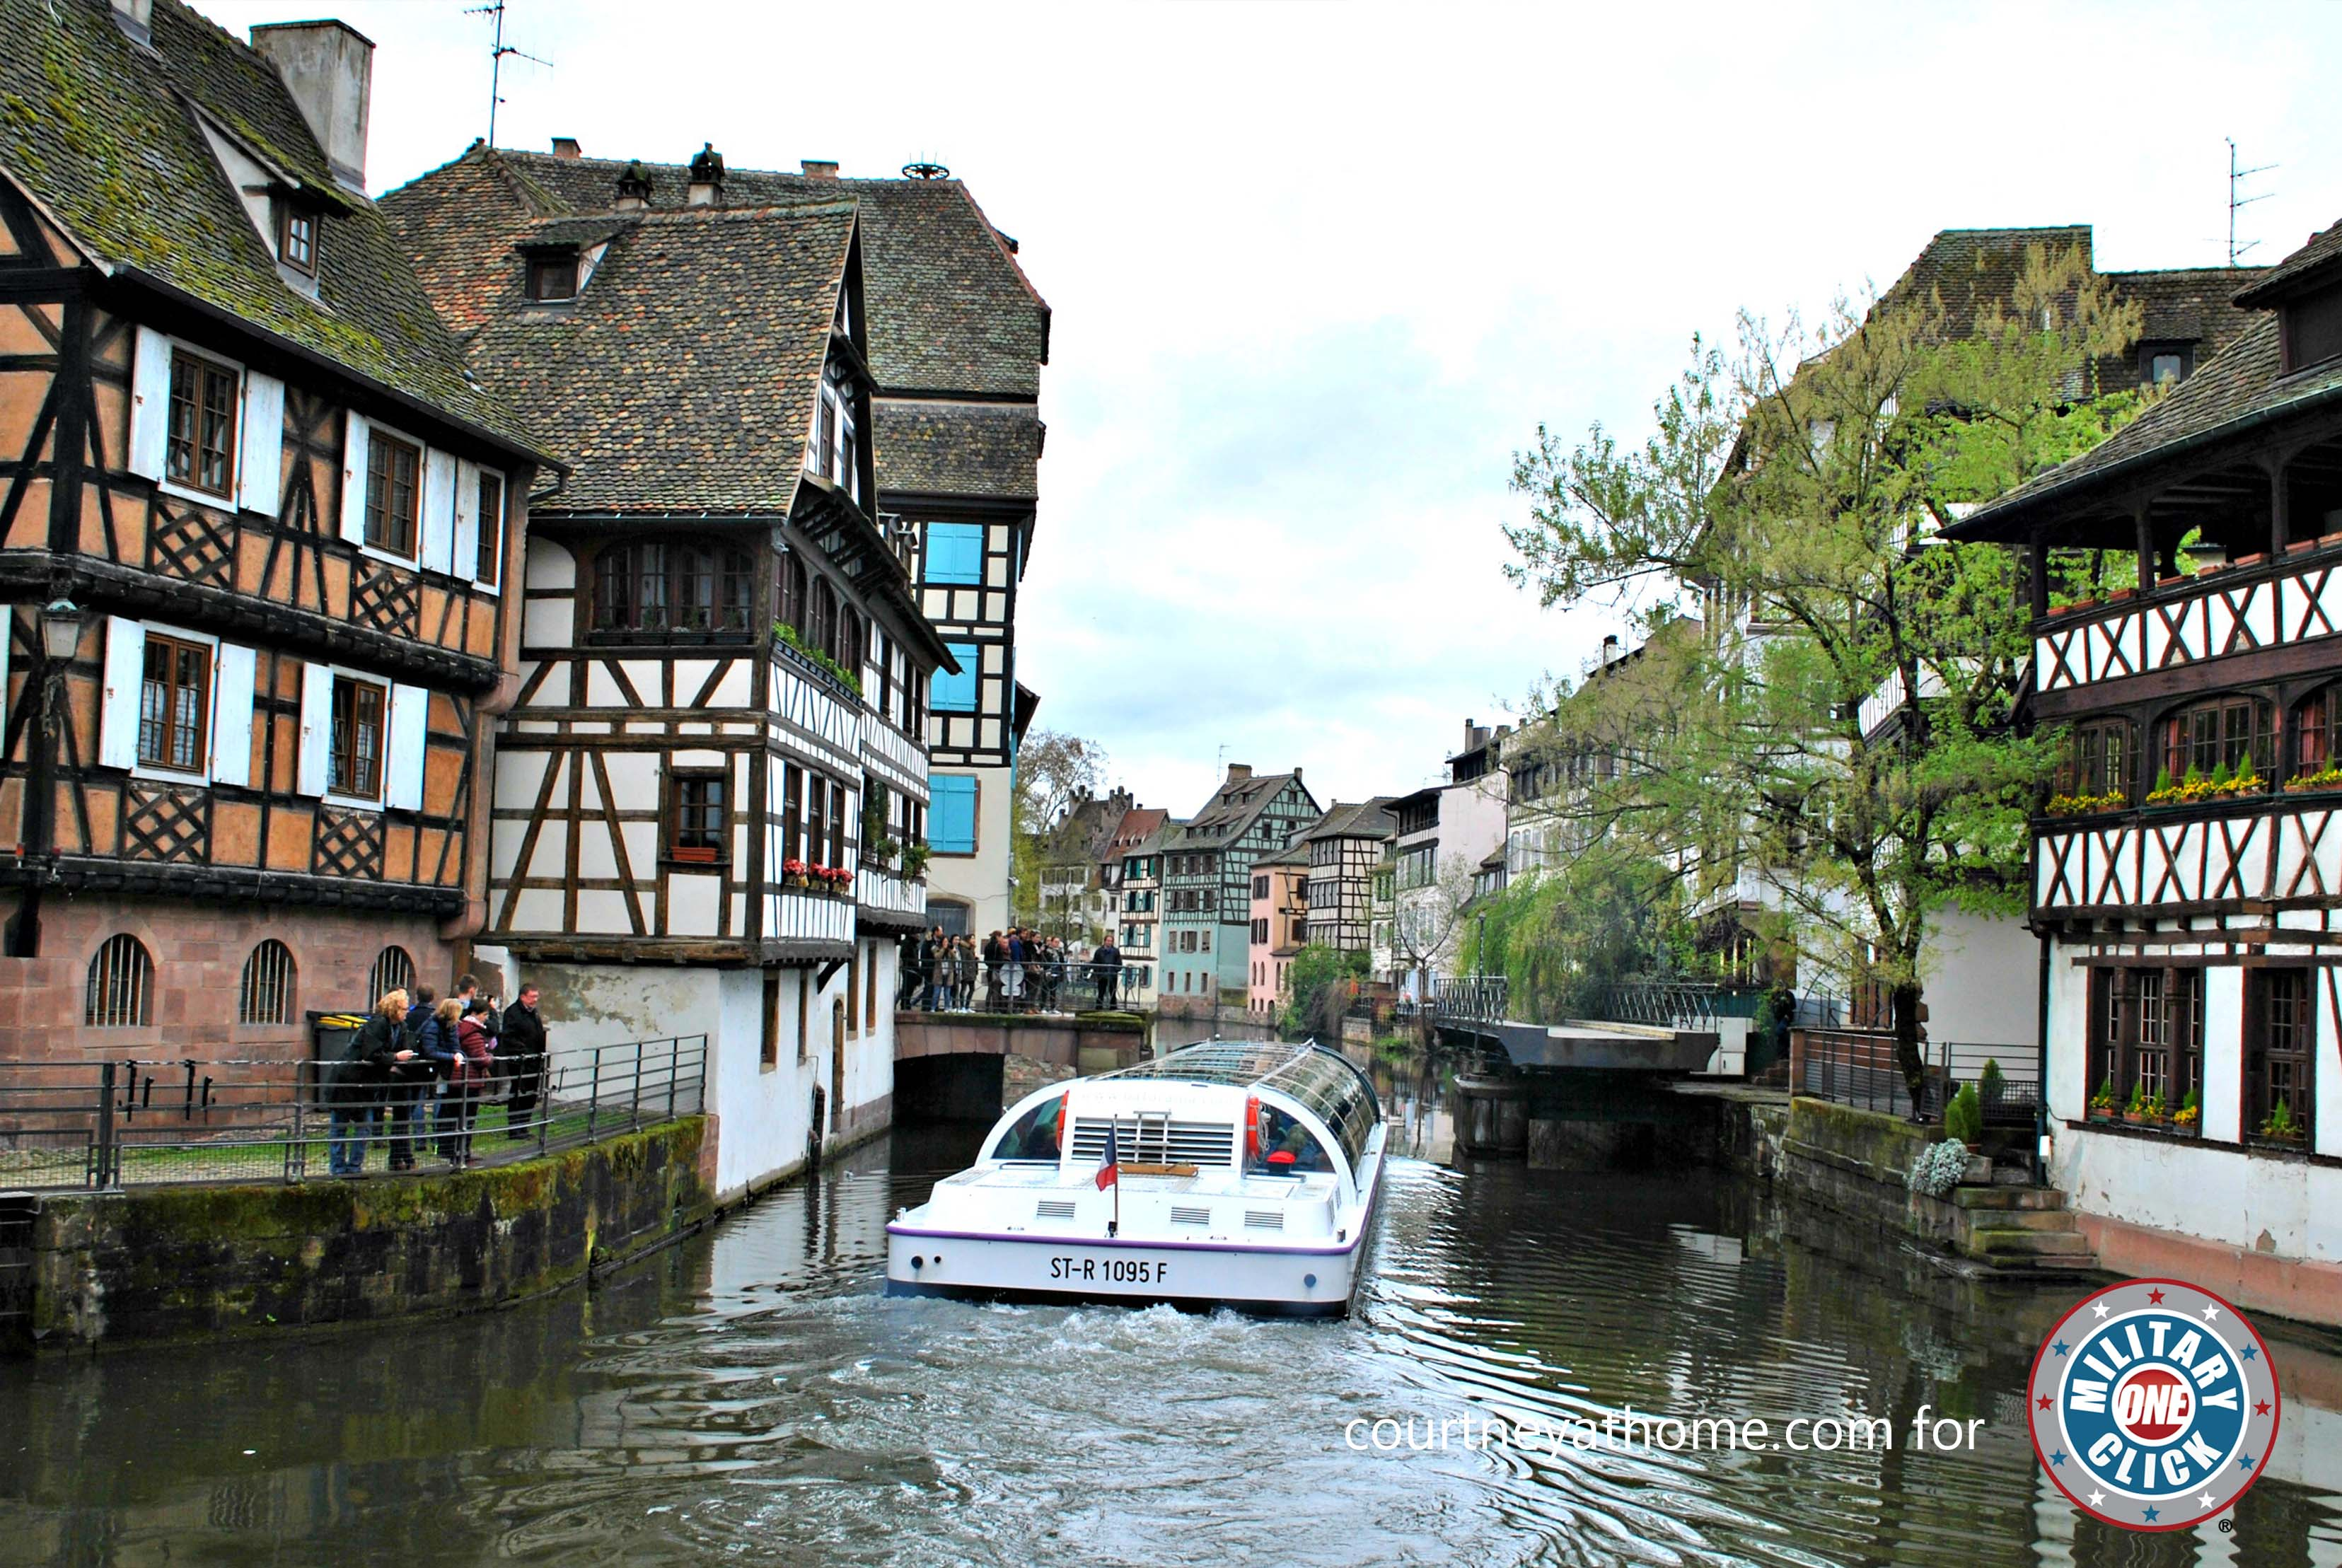 Travel tips for visiting Strasbourg, France from a military family stationed in Germany.